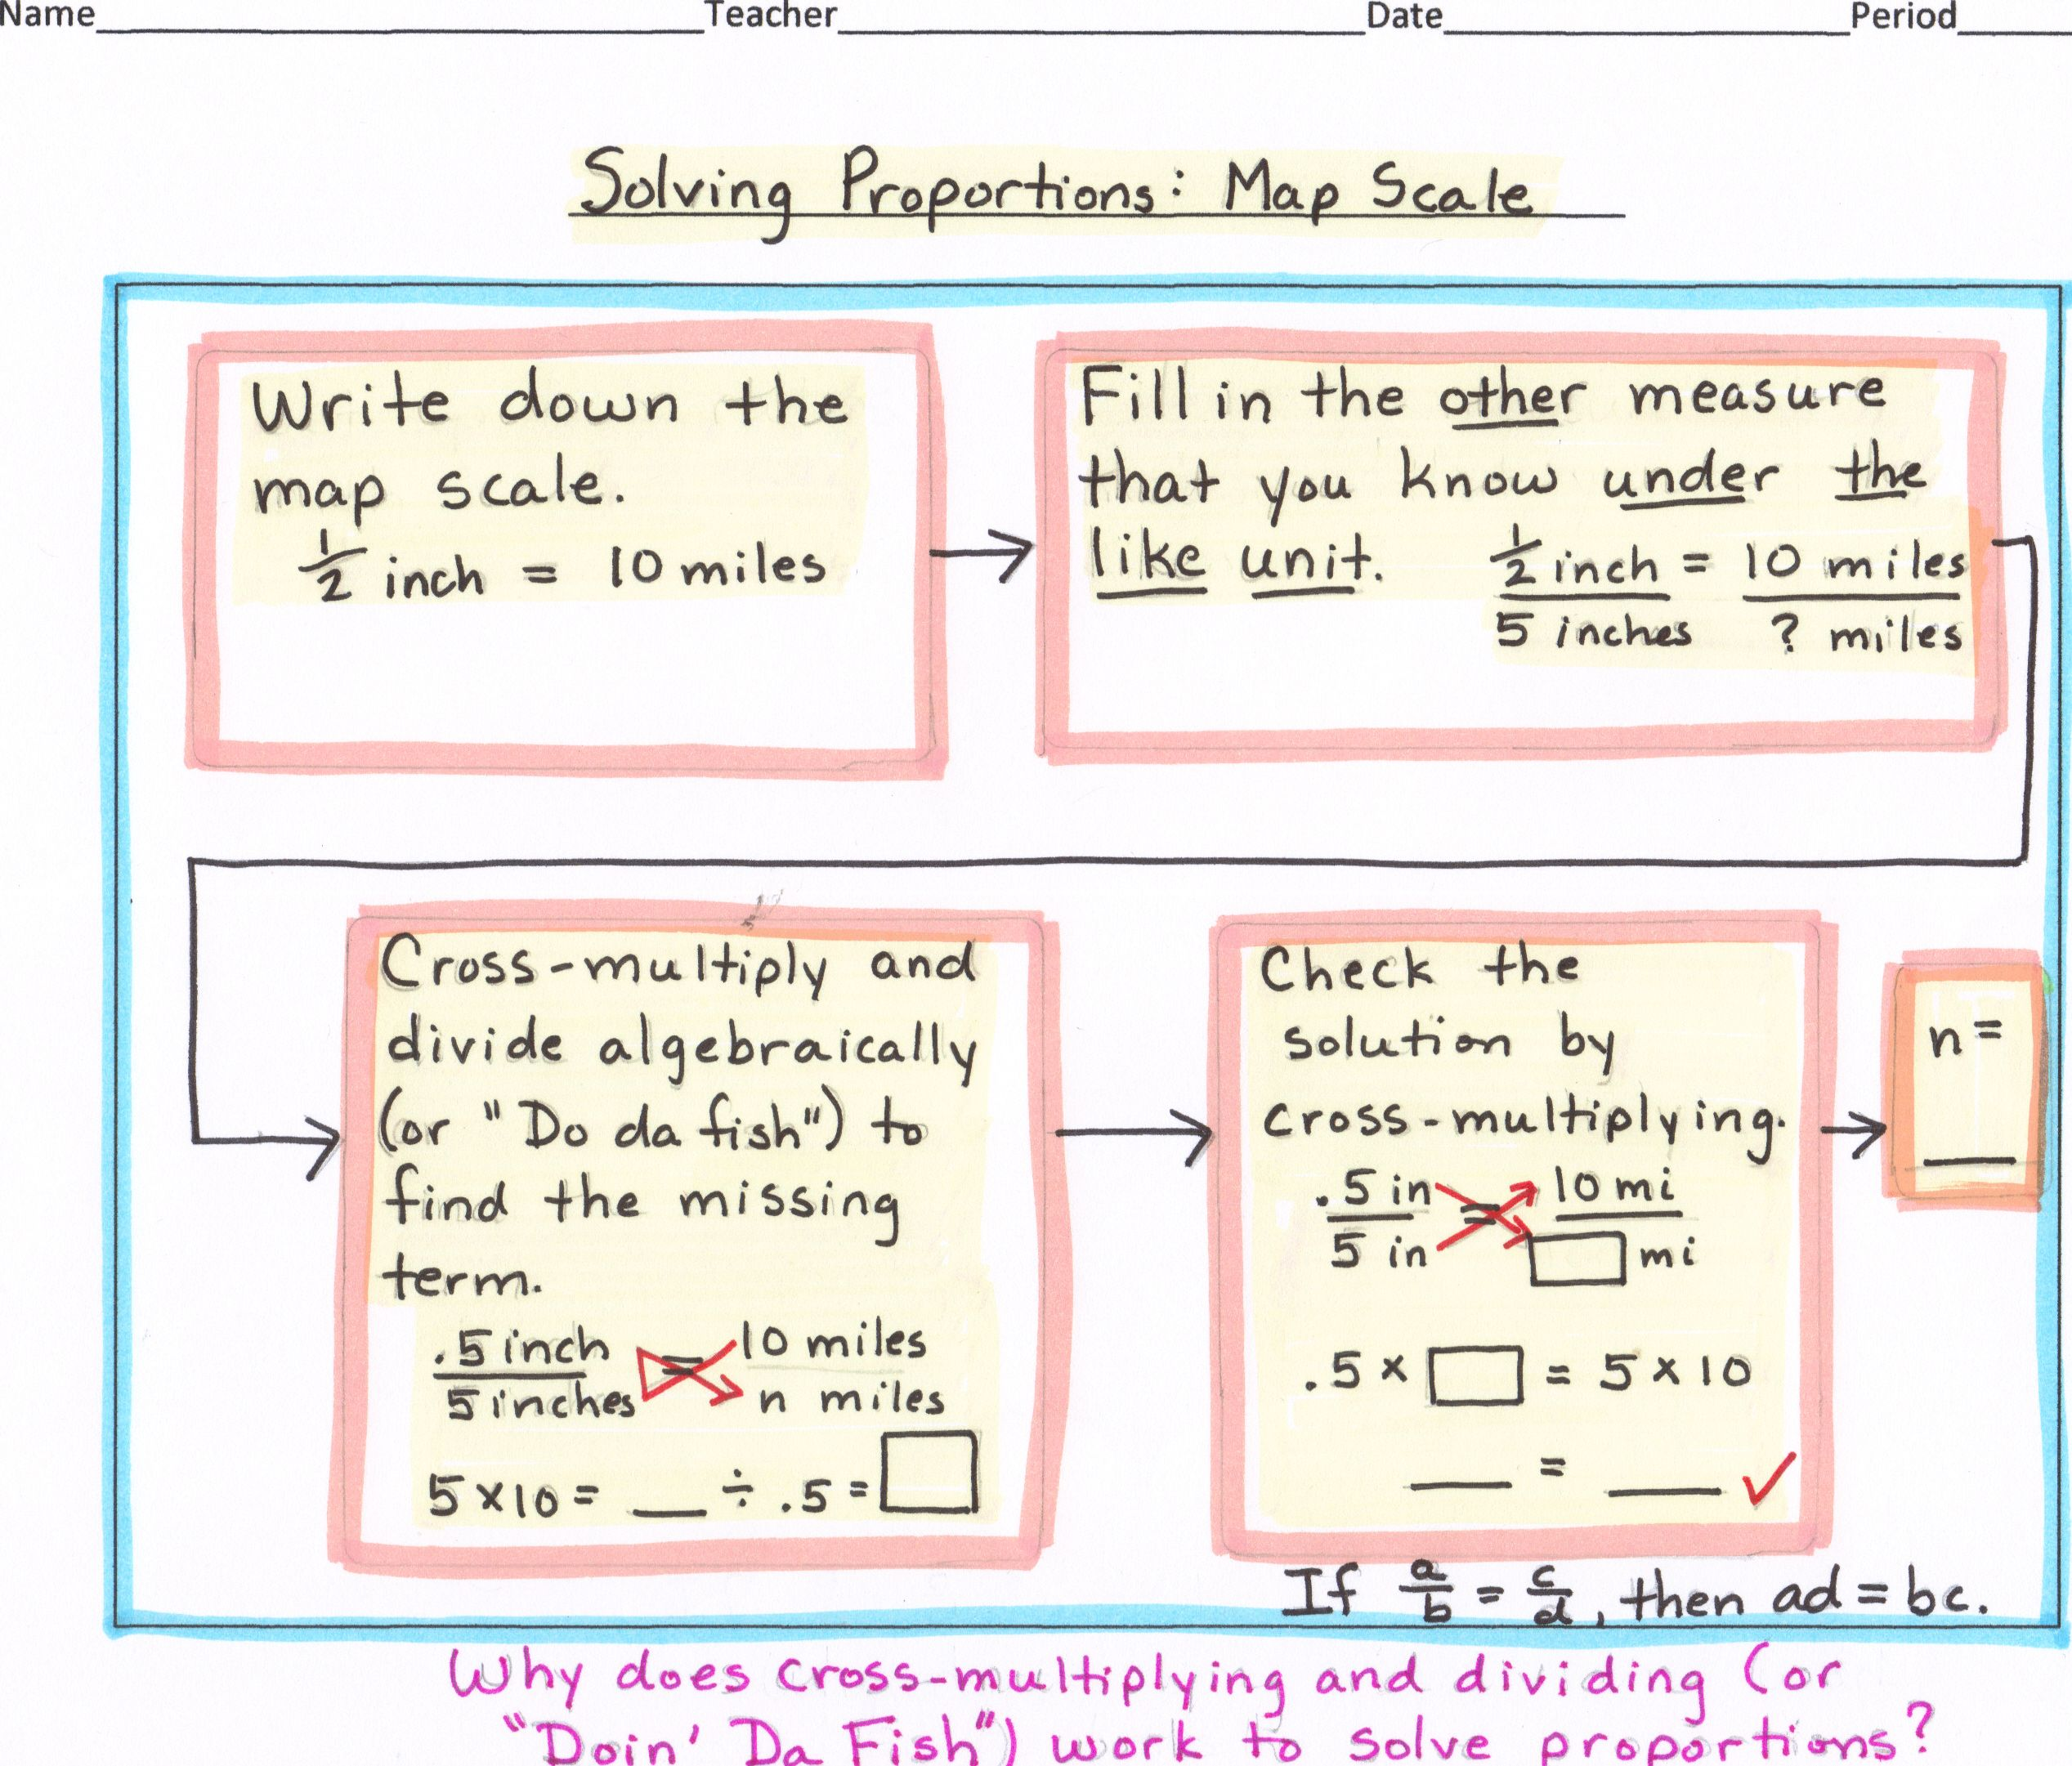 Math Algebra Flow Map Solving Proportion Map Scale